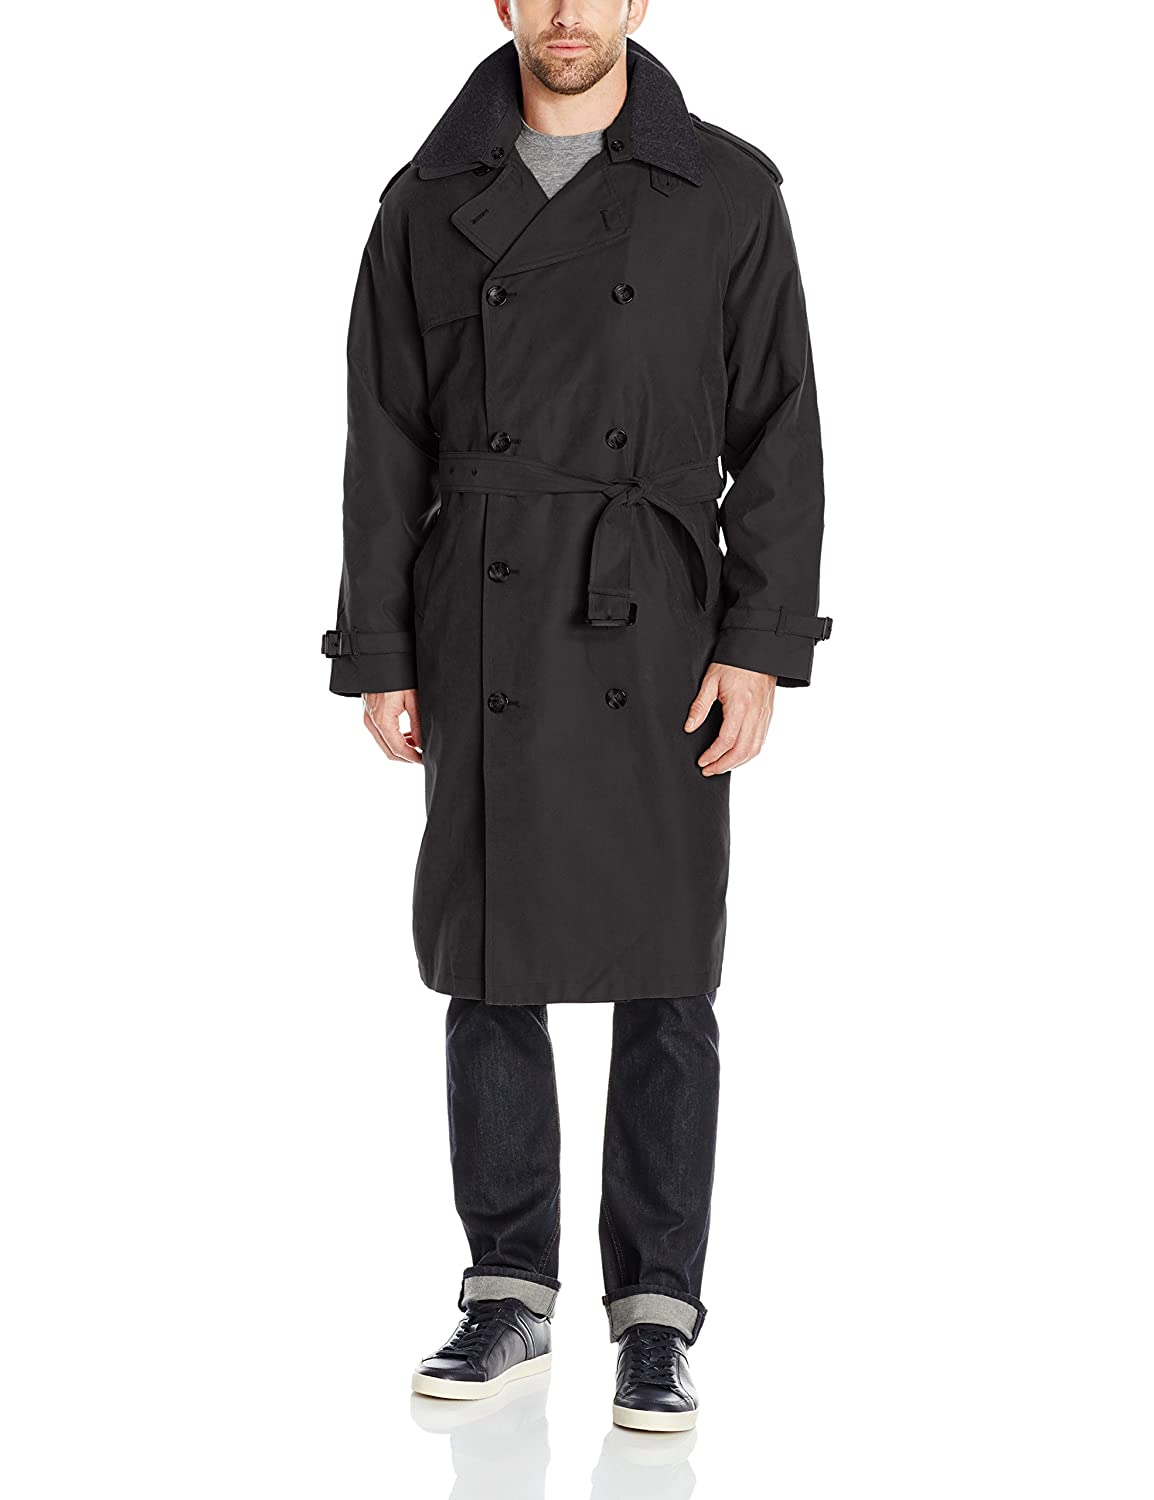 Amazon.com : Men's Full-length German Military Trench Coat - Gray